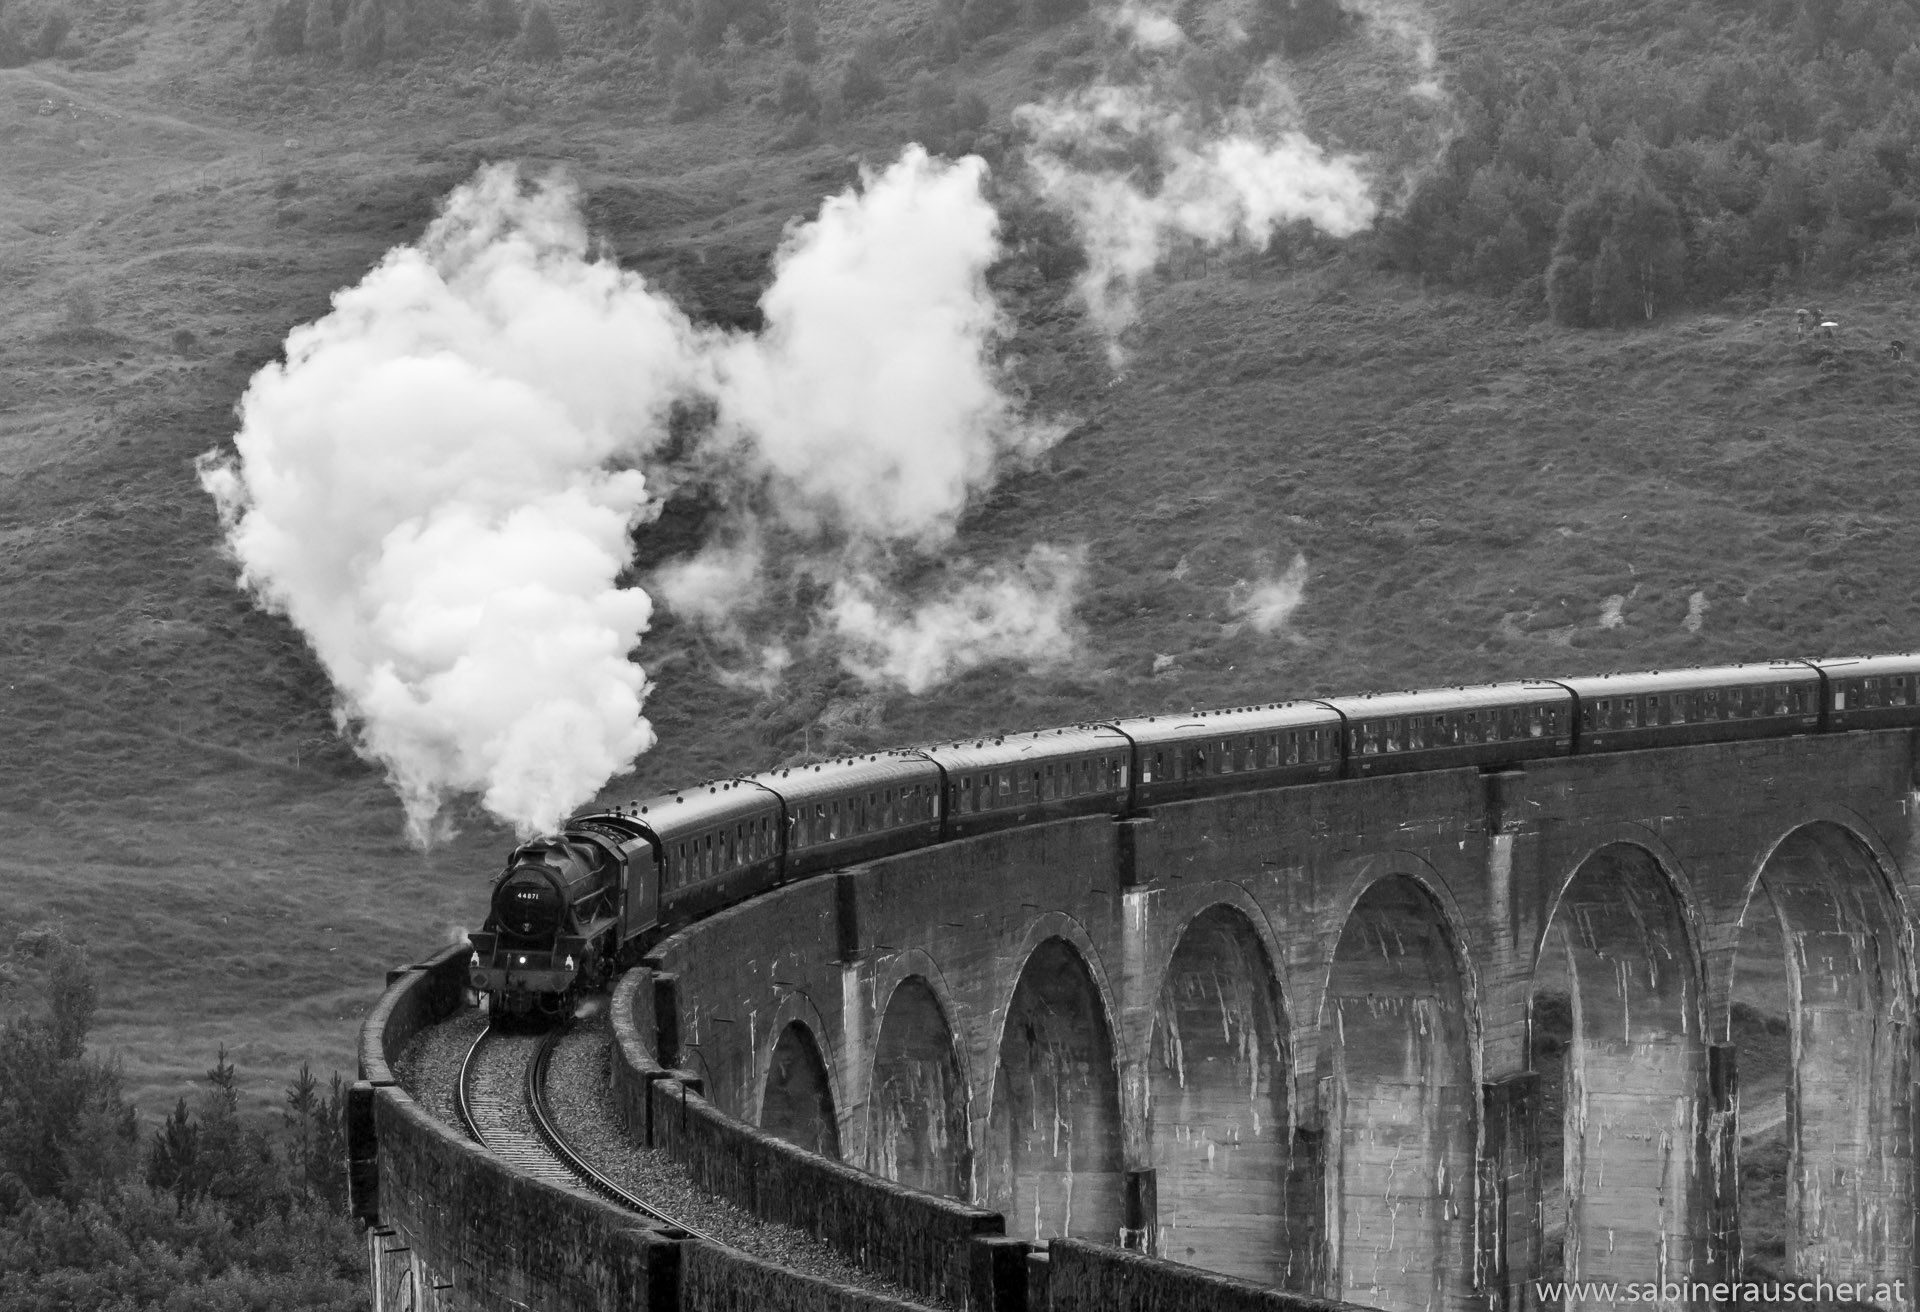 Jacobite Steam Train on the Glenfinnan Viaduct | Jacobite Dampfzug am Glenfinnan Viadukt